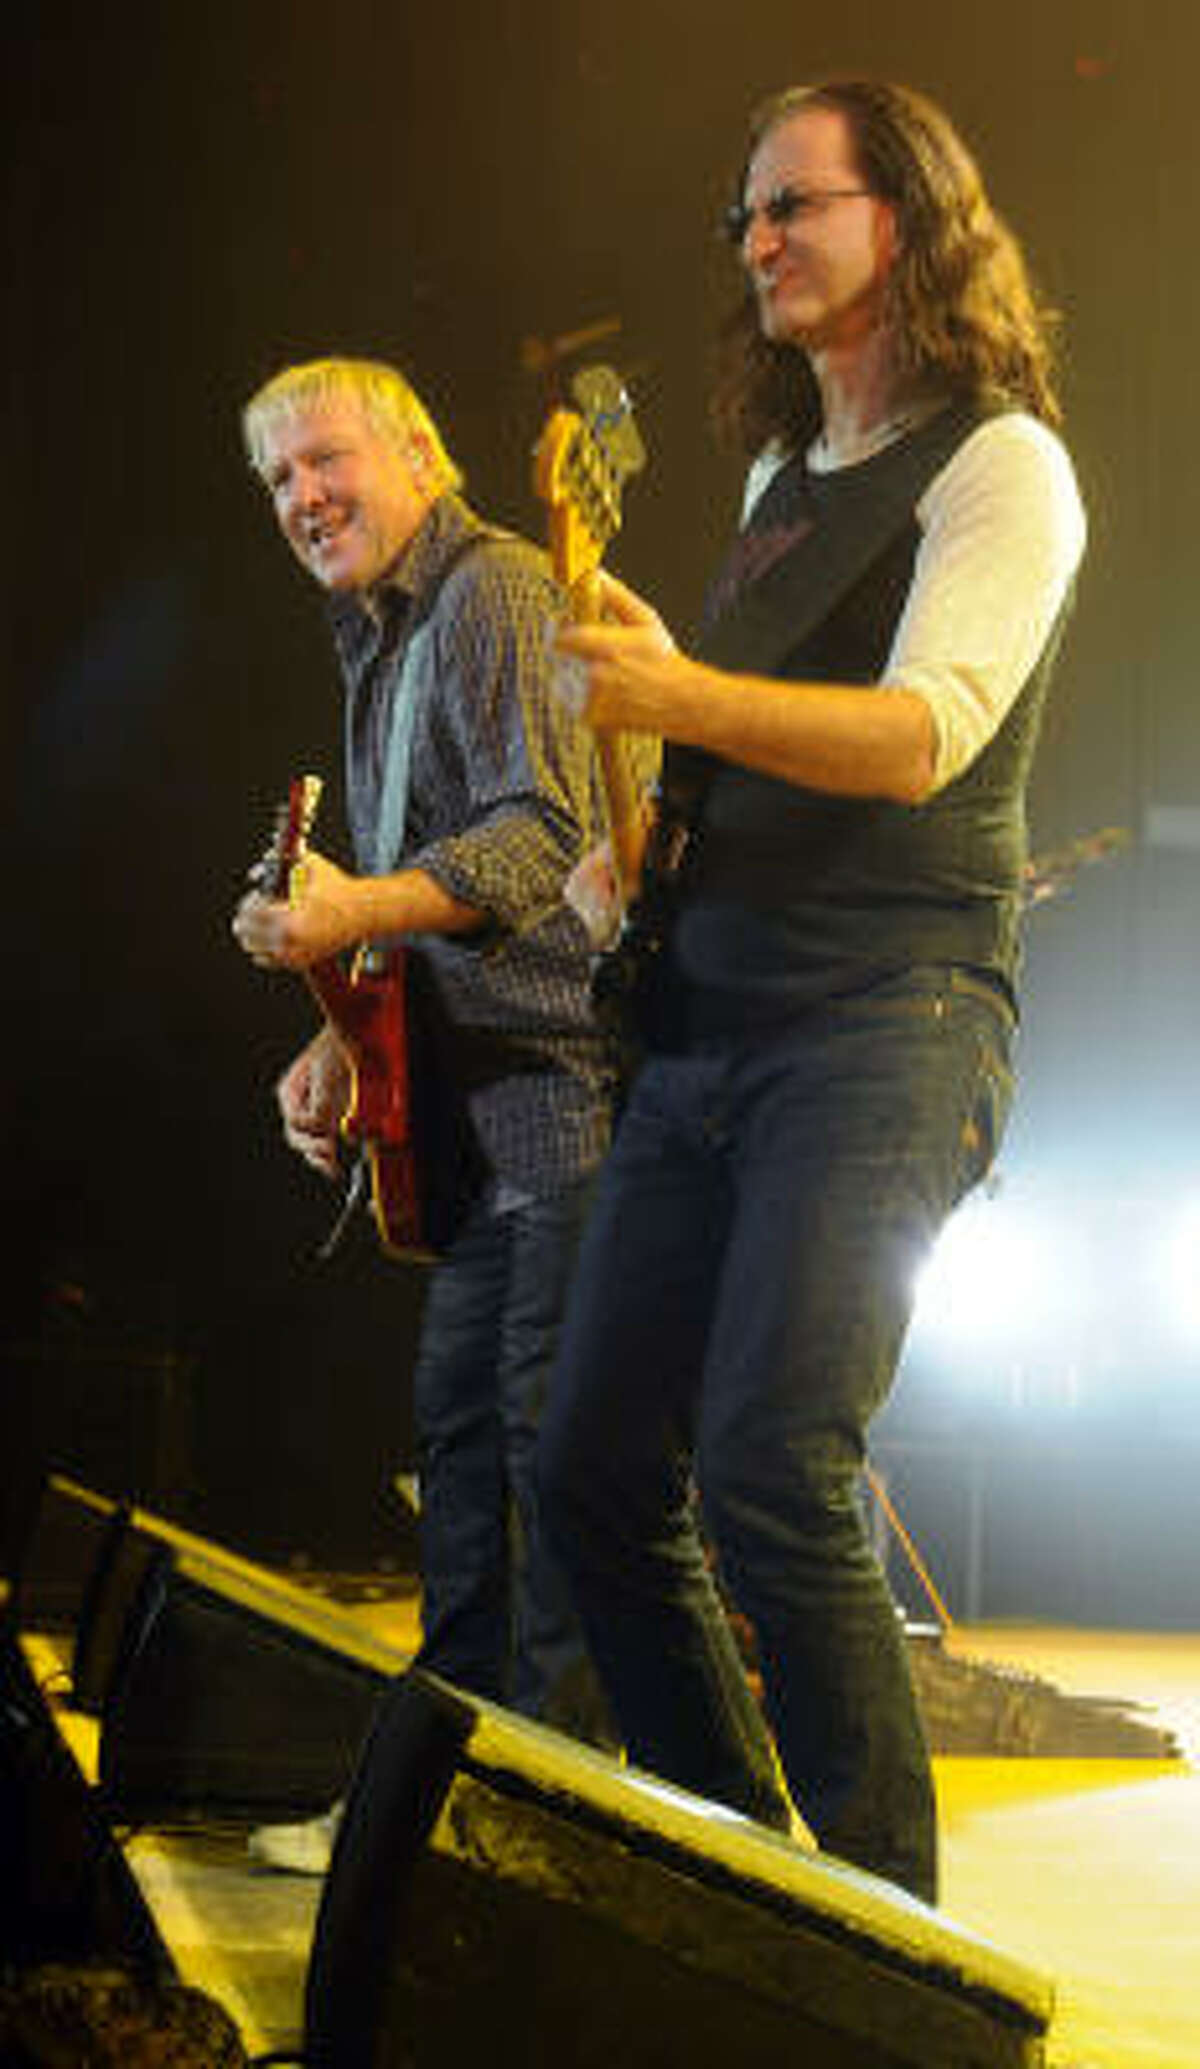 Alex Lifeson and Geddy Lee of Rush performs at the Cynthia Woods Mitchell Pavilion in The Woodlands Saturday Sept. 25, 2010.